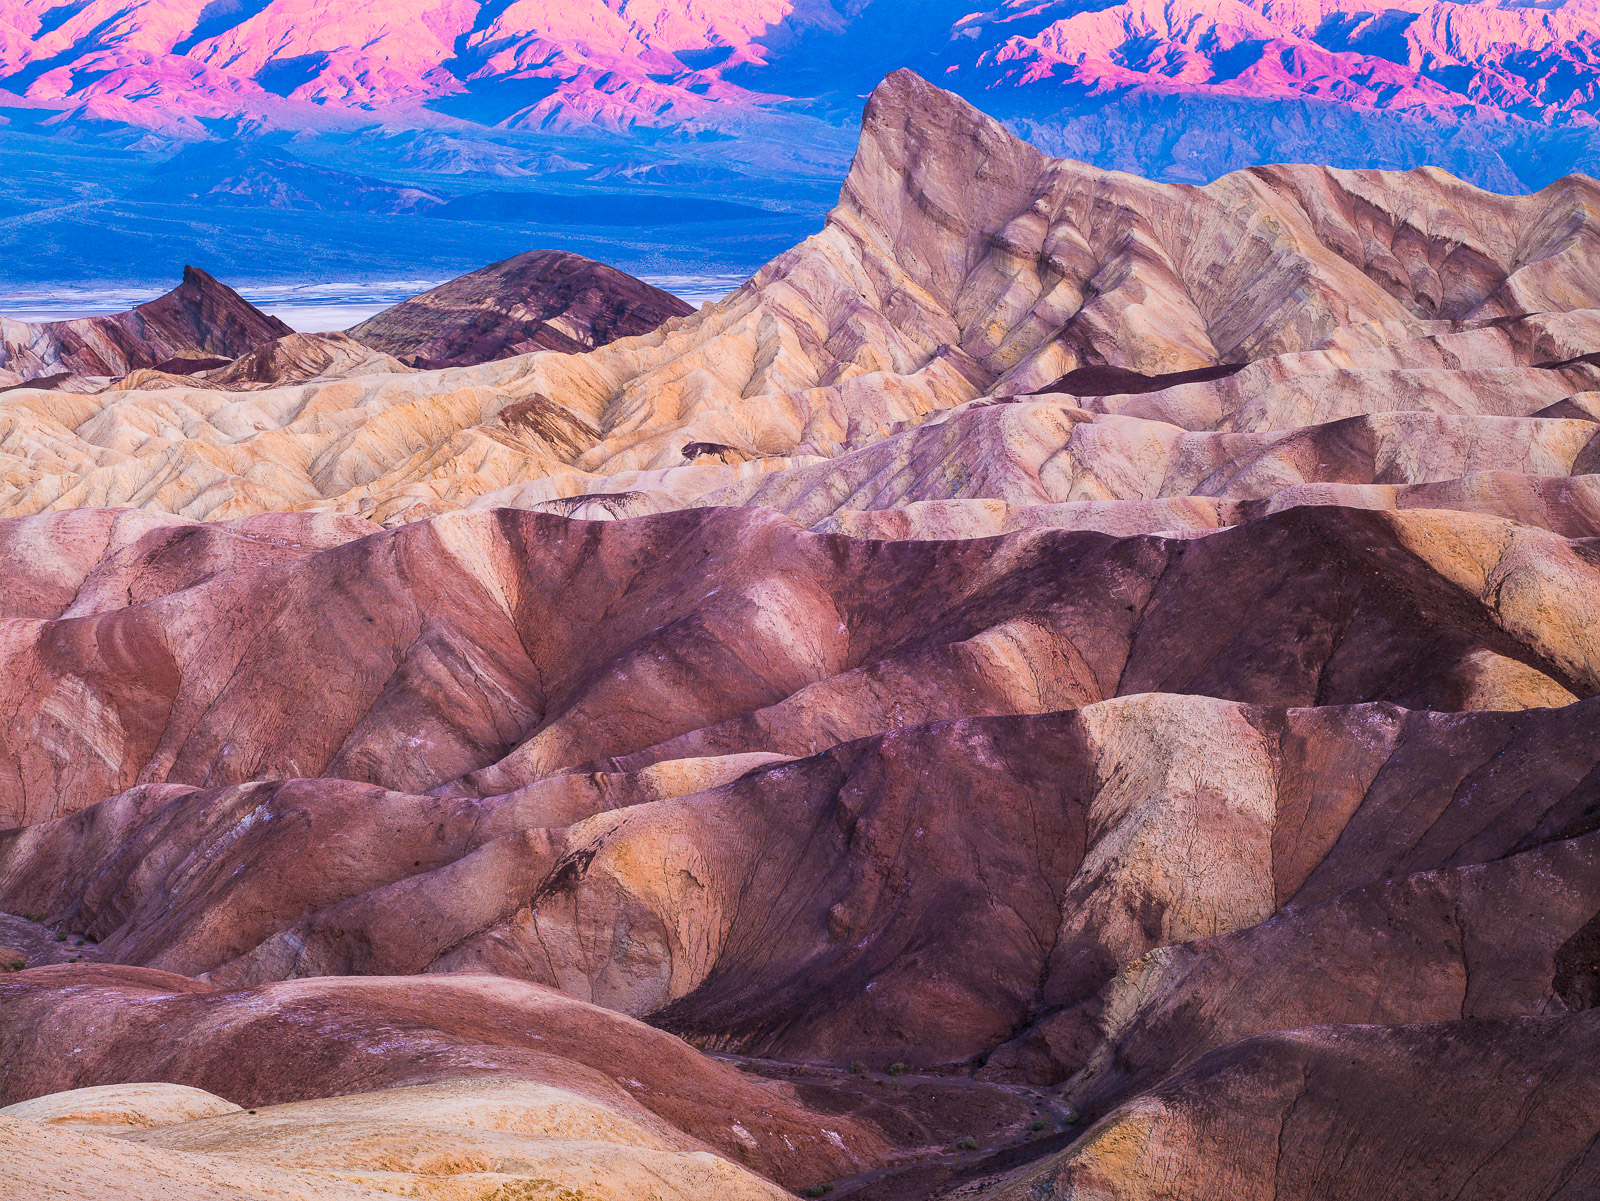 Sun Painting Stone,California,Death Valley National Park,Desert,Purple,Sunrise,Yellow,horizontal, photo